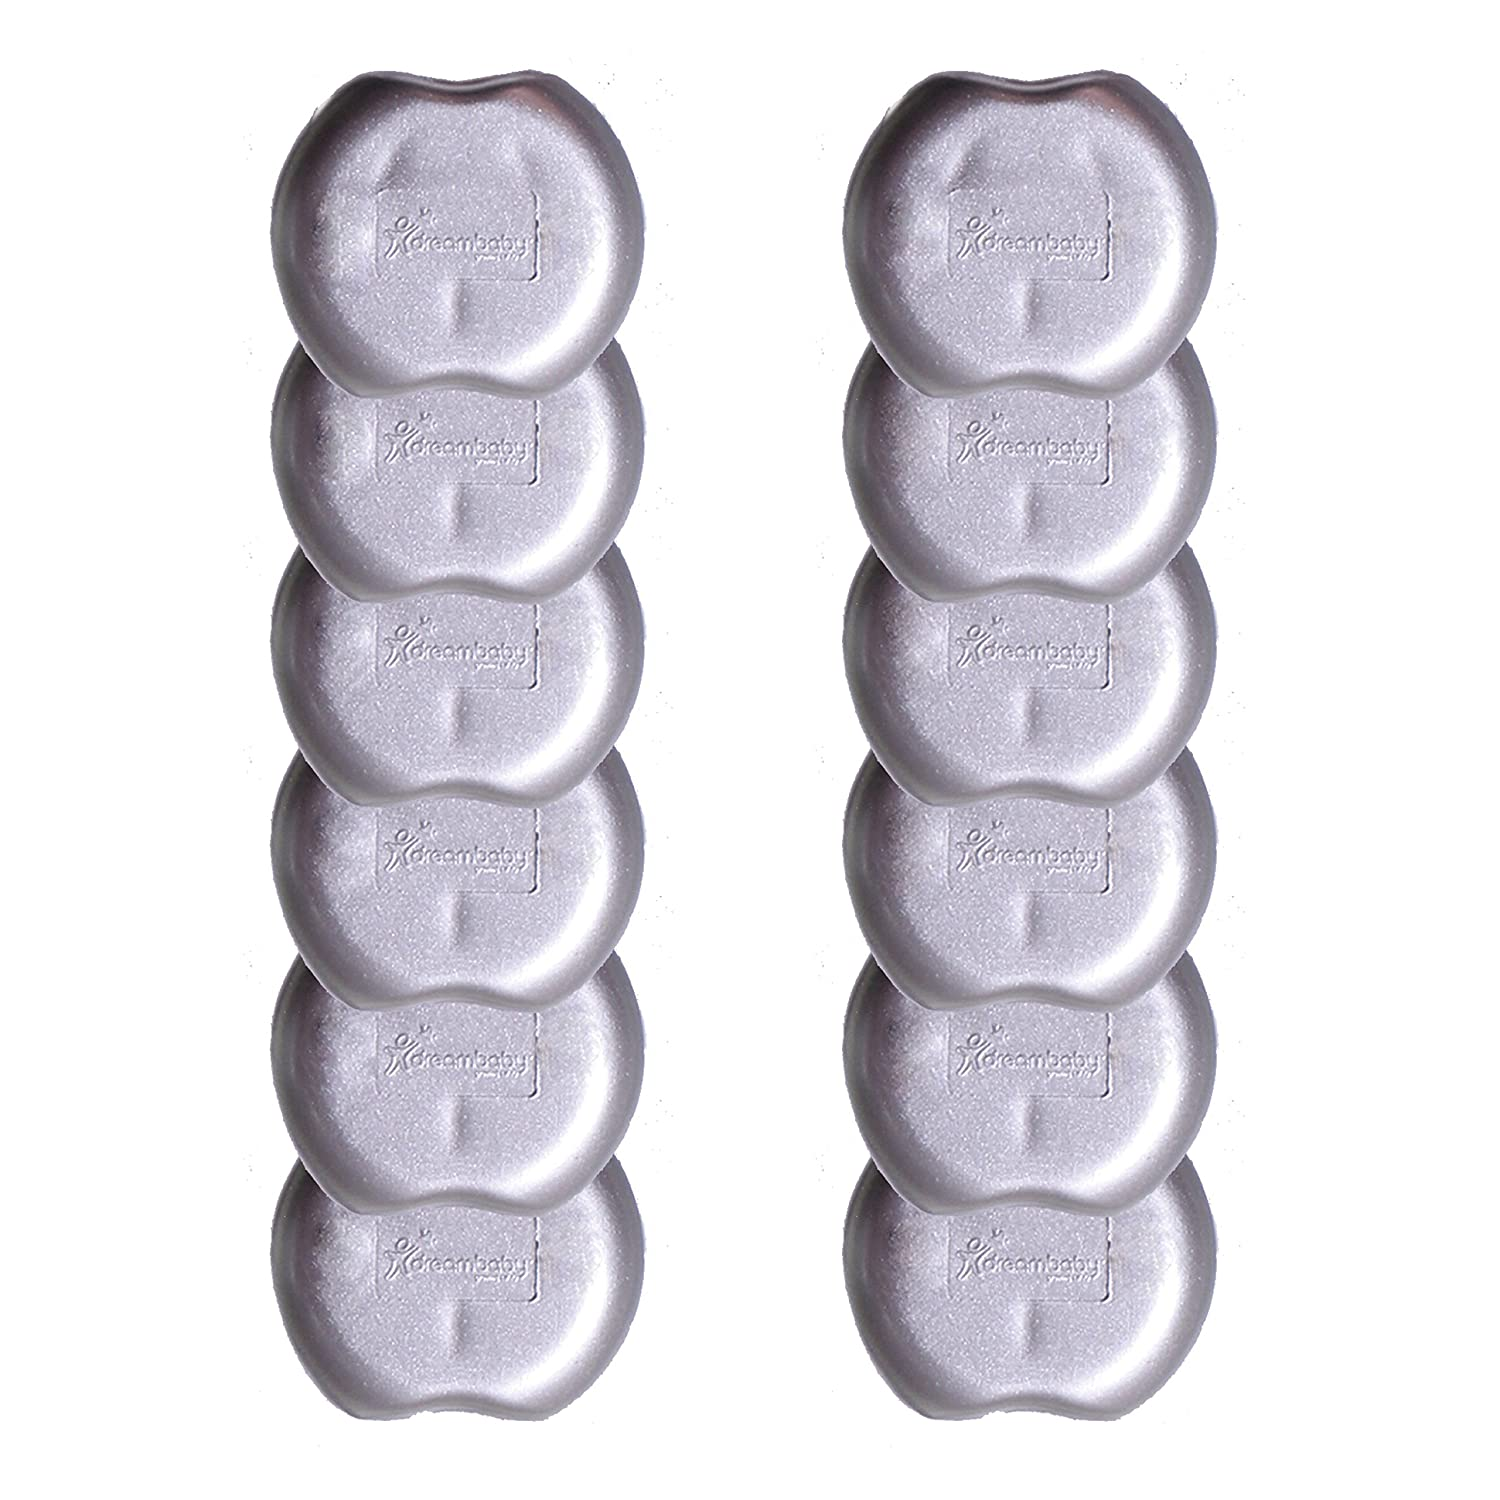 Dreambaby Outlet Plugs Silver 12 Count